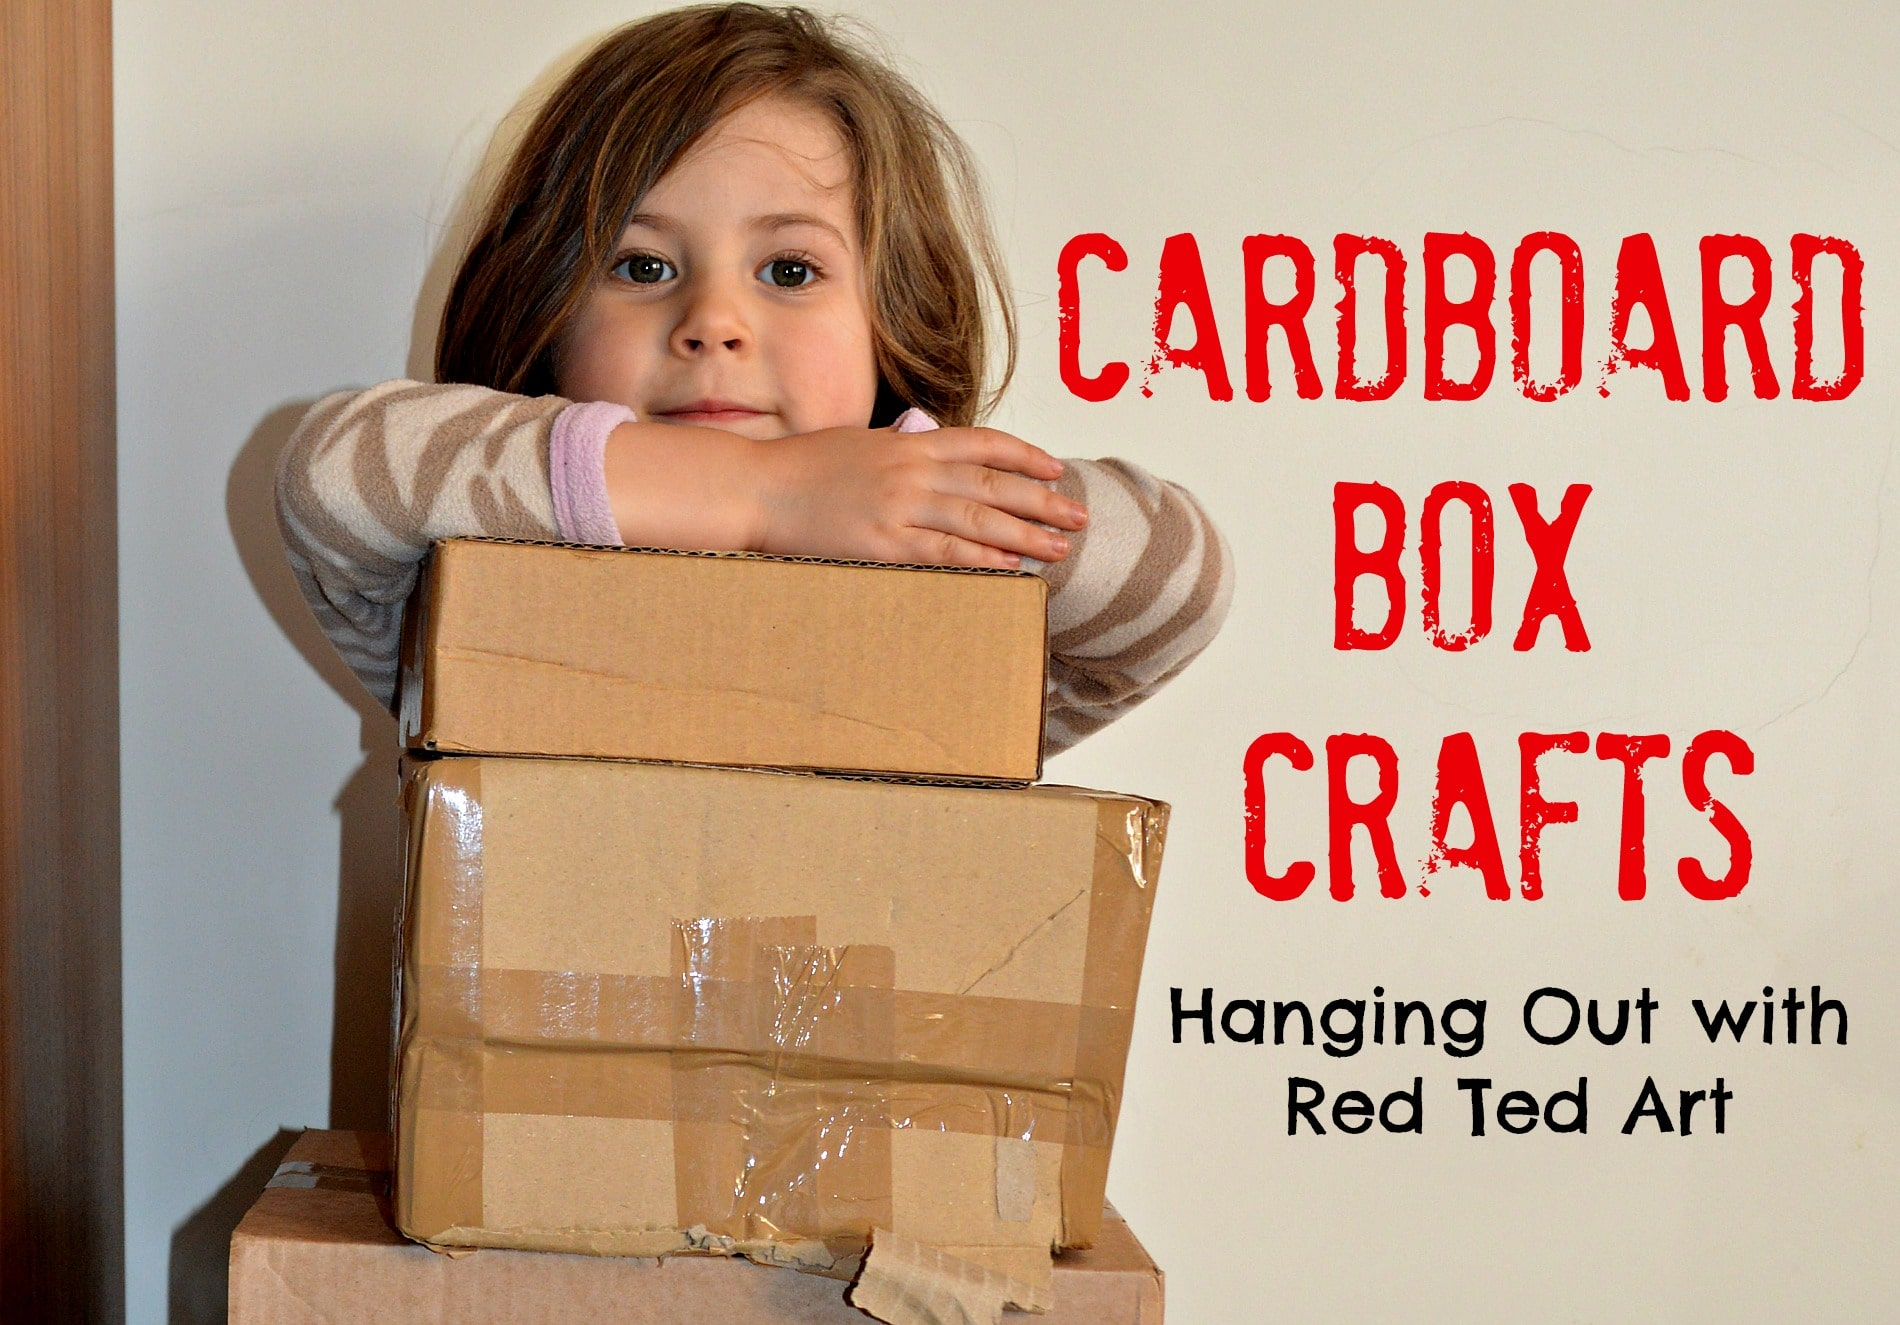 20 Cardboard Box Craft Ideas